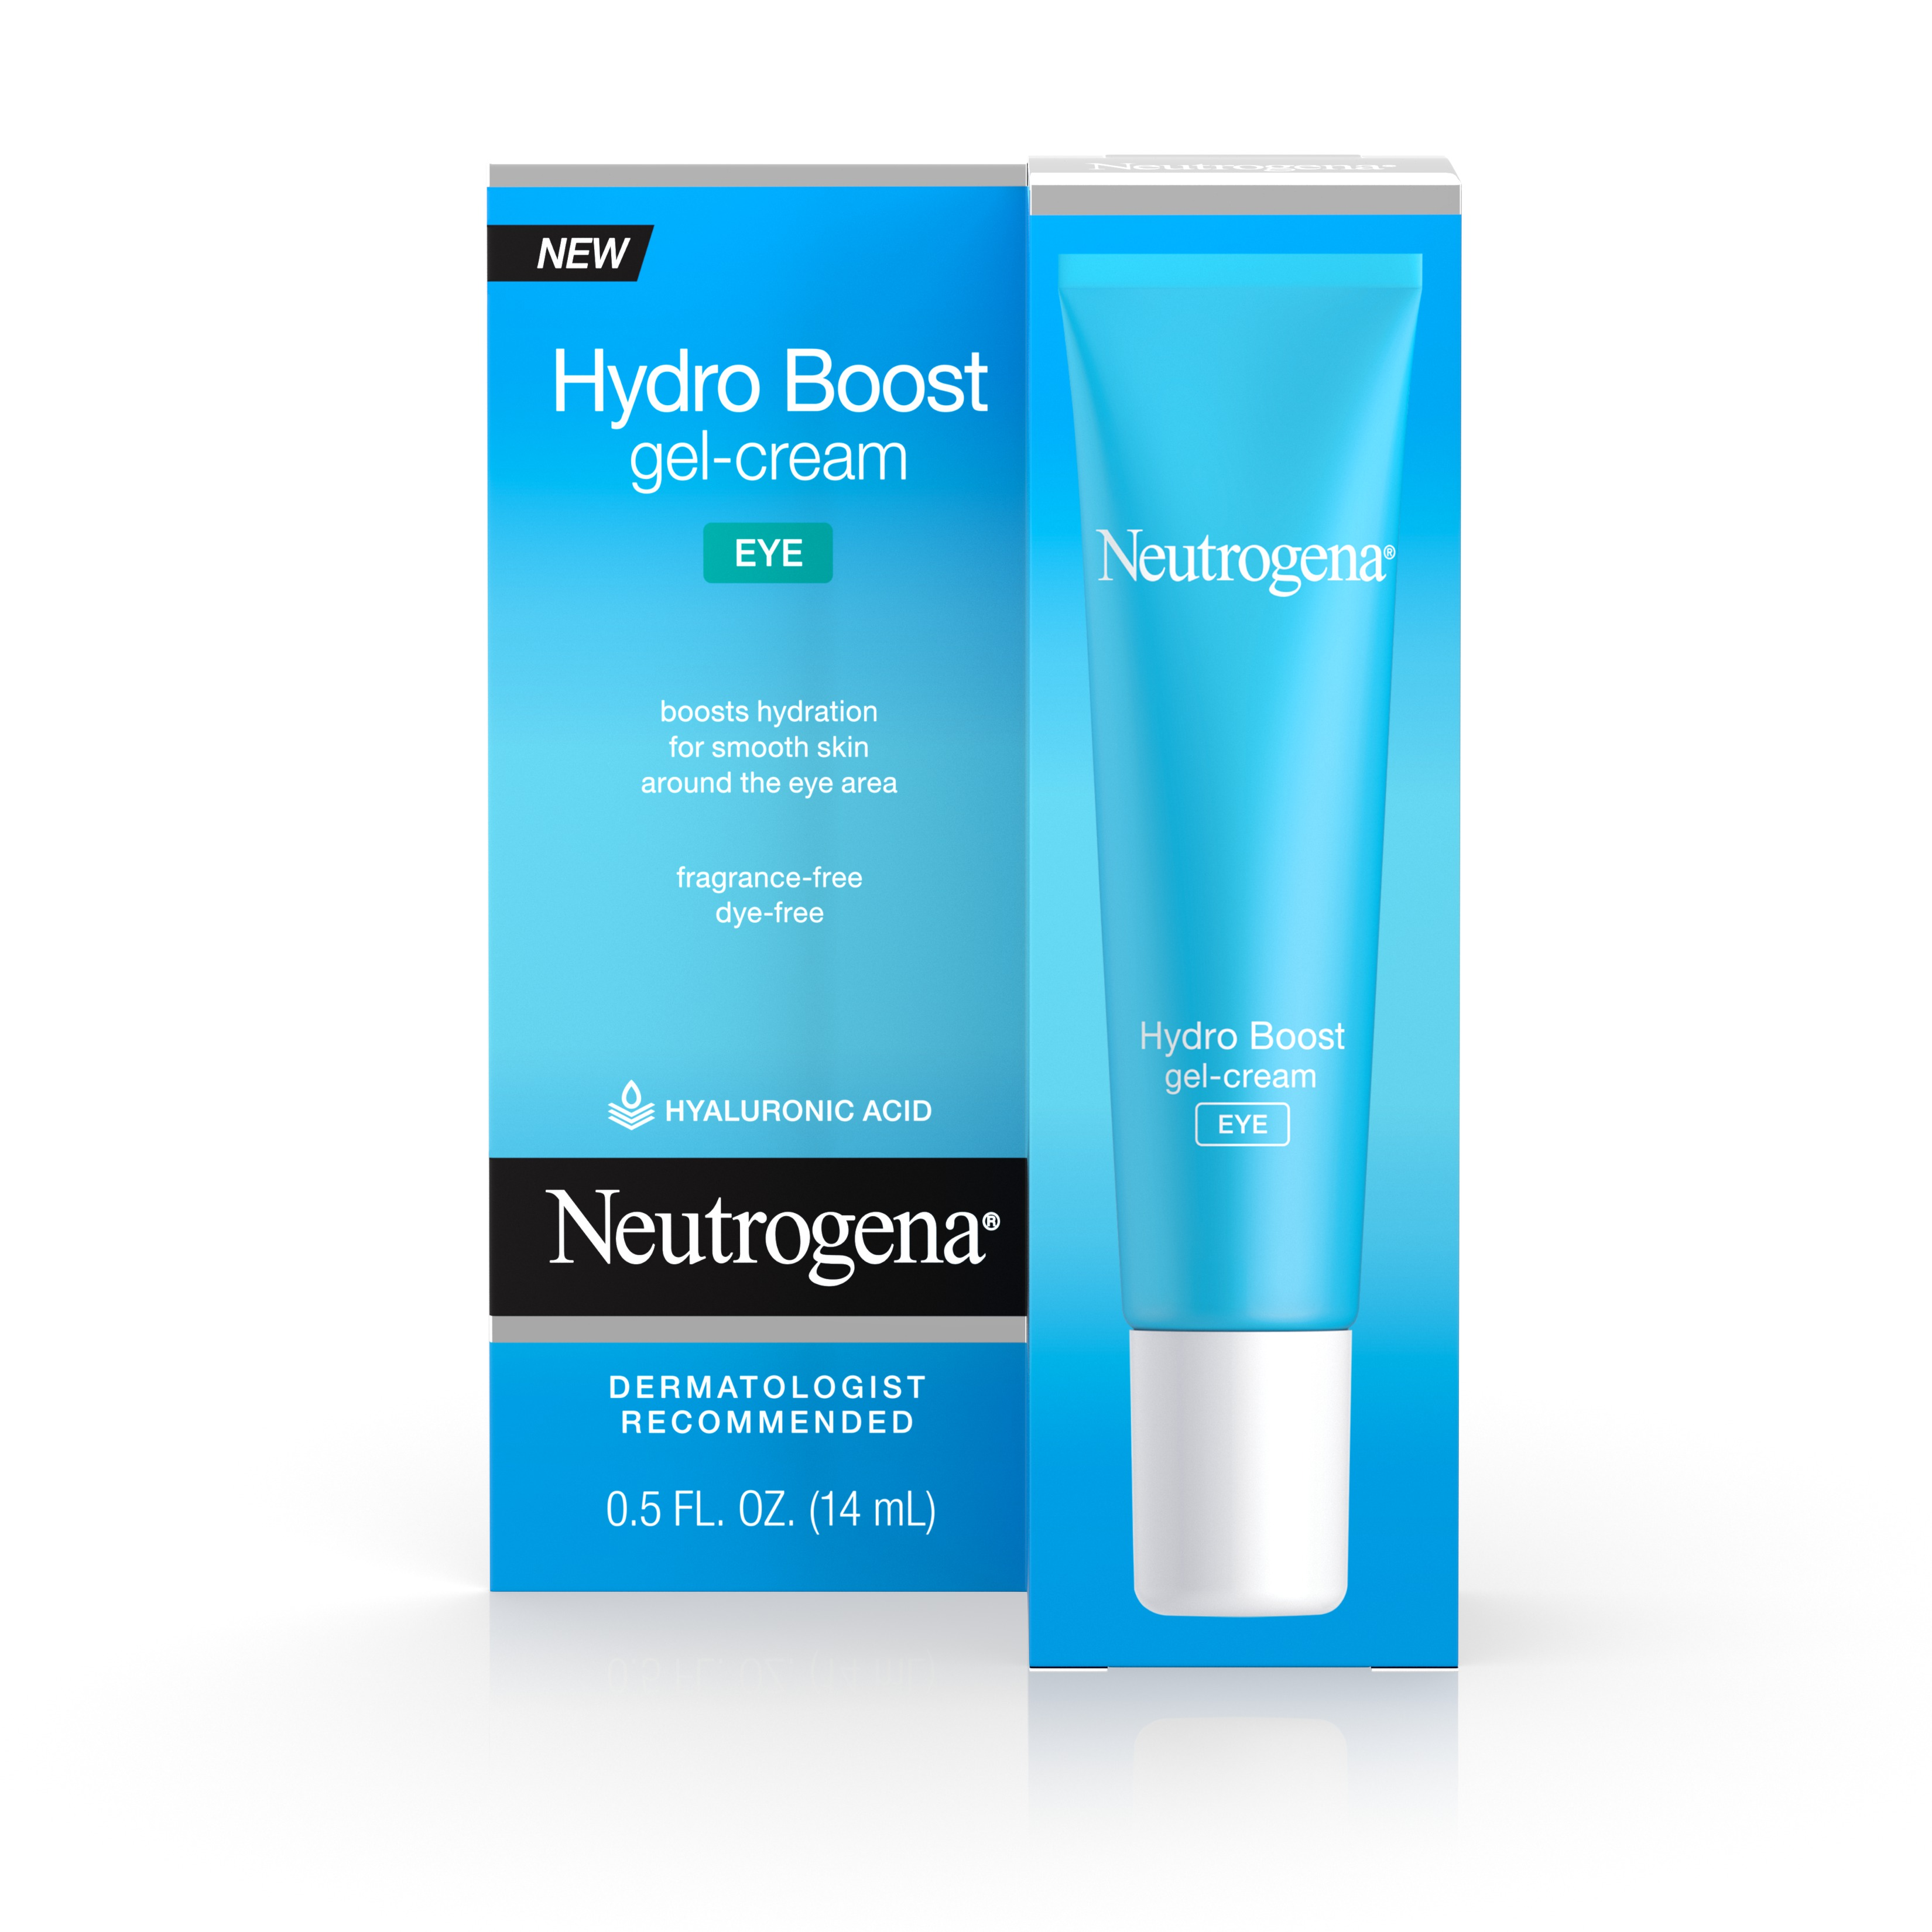 Neutrogena Hydro Boost Eye Gel-Cream, 0.5 Fl. Oz - Walmart.com